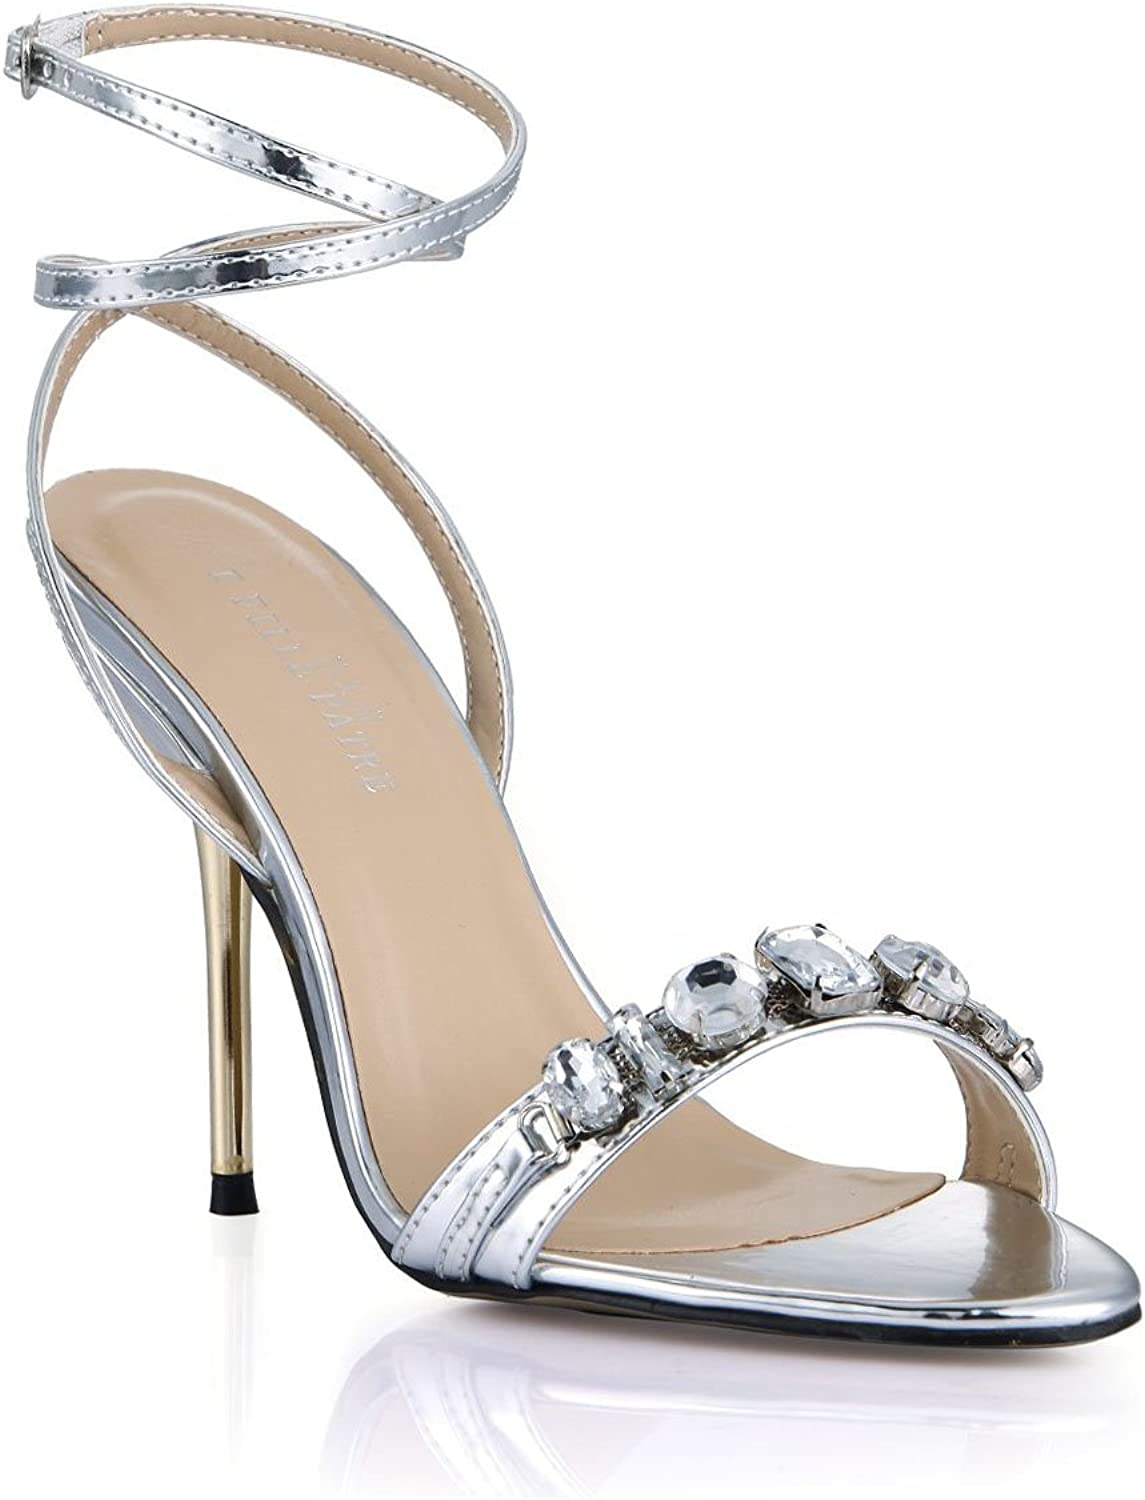 Dolphin Women's Rhinestone Open Toe High Heel Sandals with Ankle Strap Wedding Dress Pumps SM00009